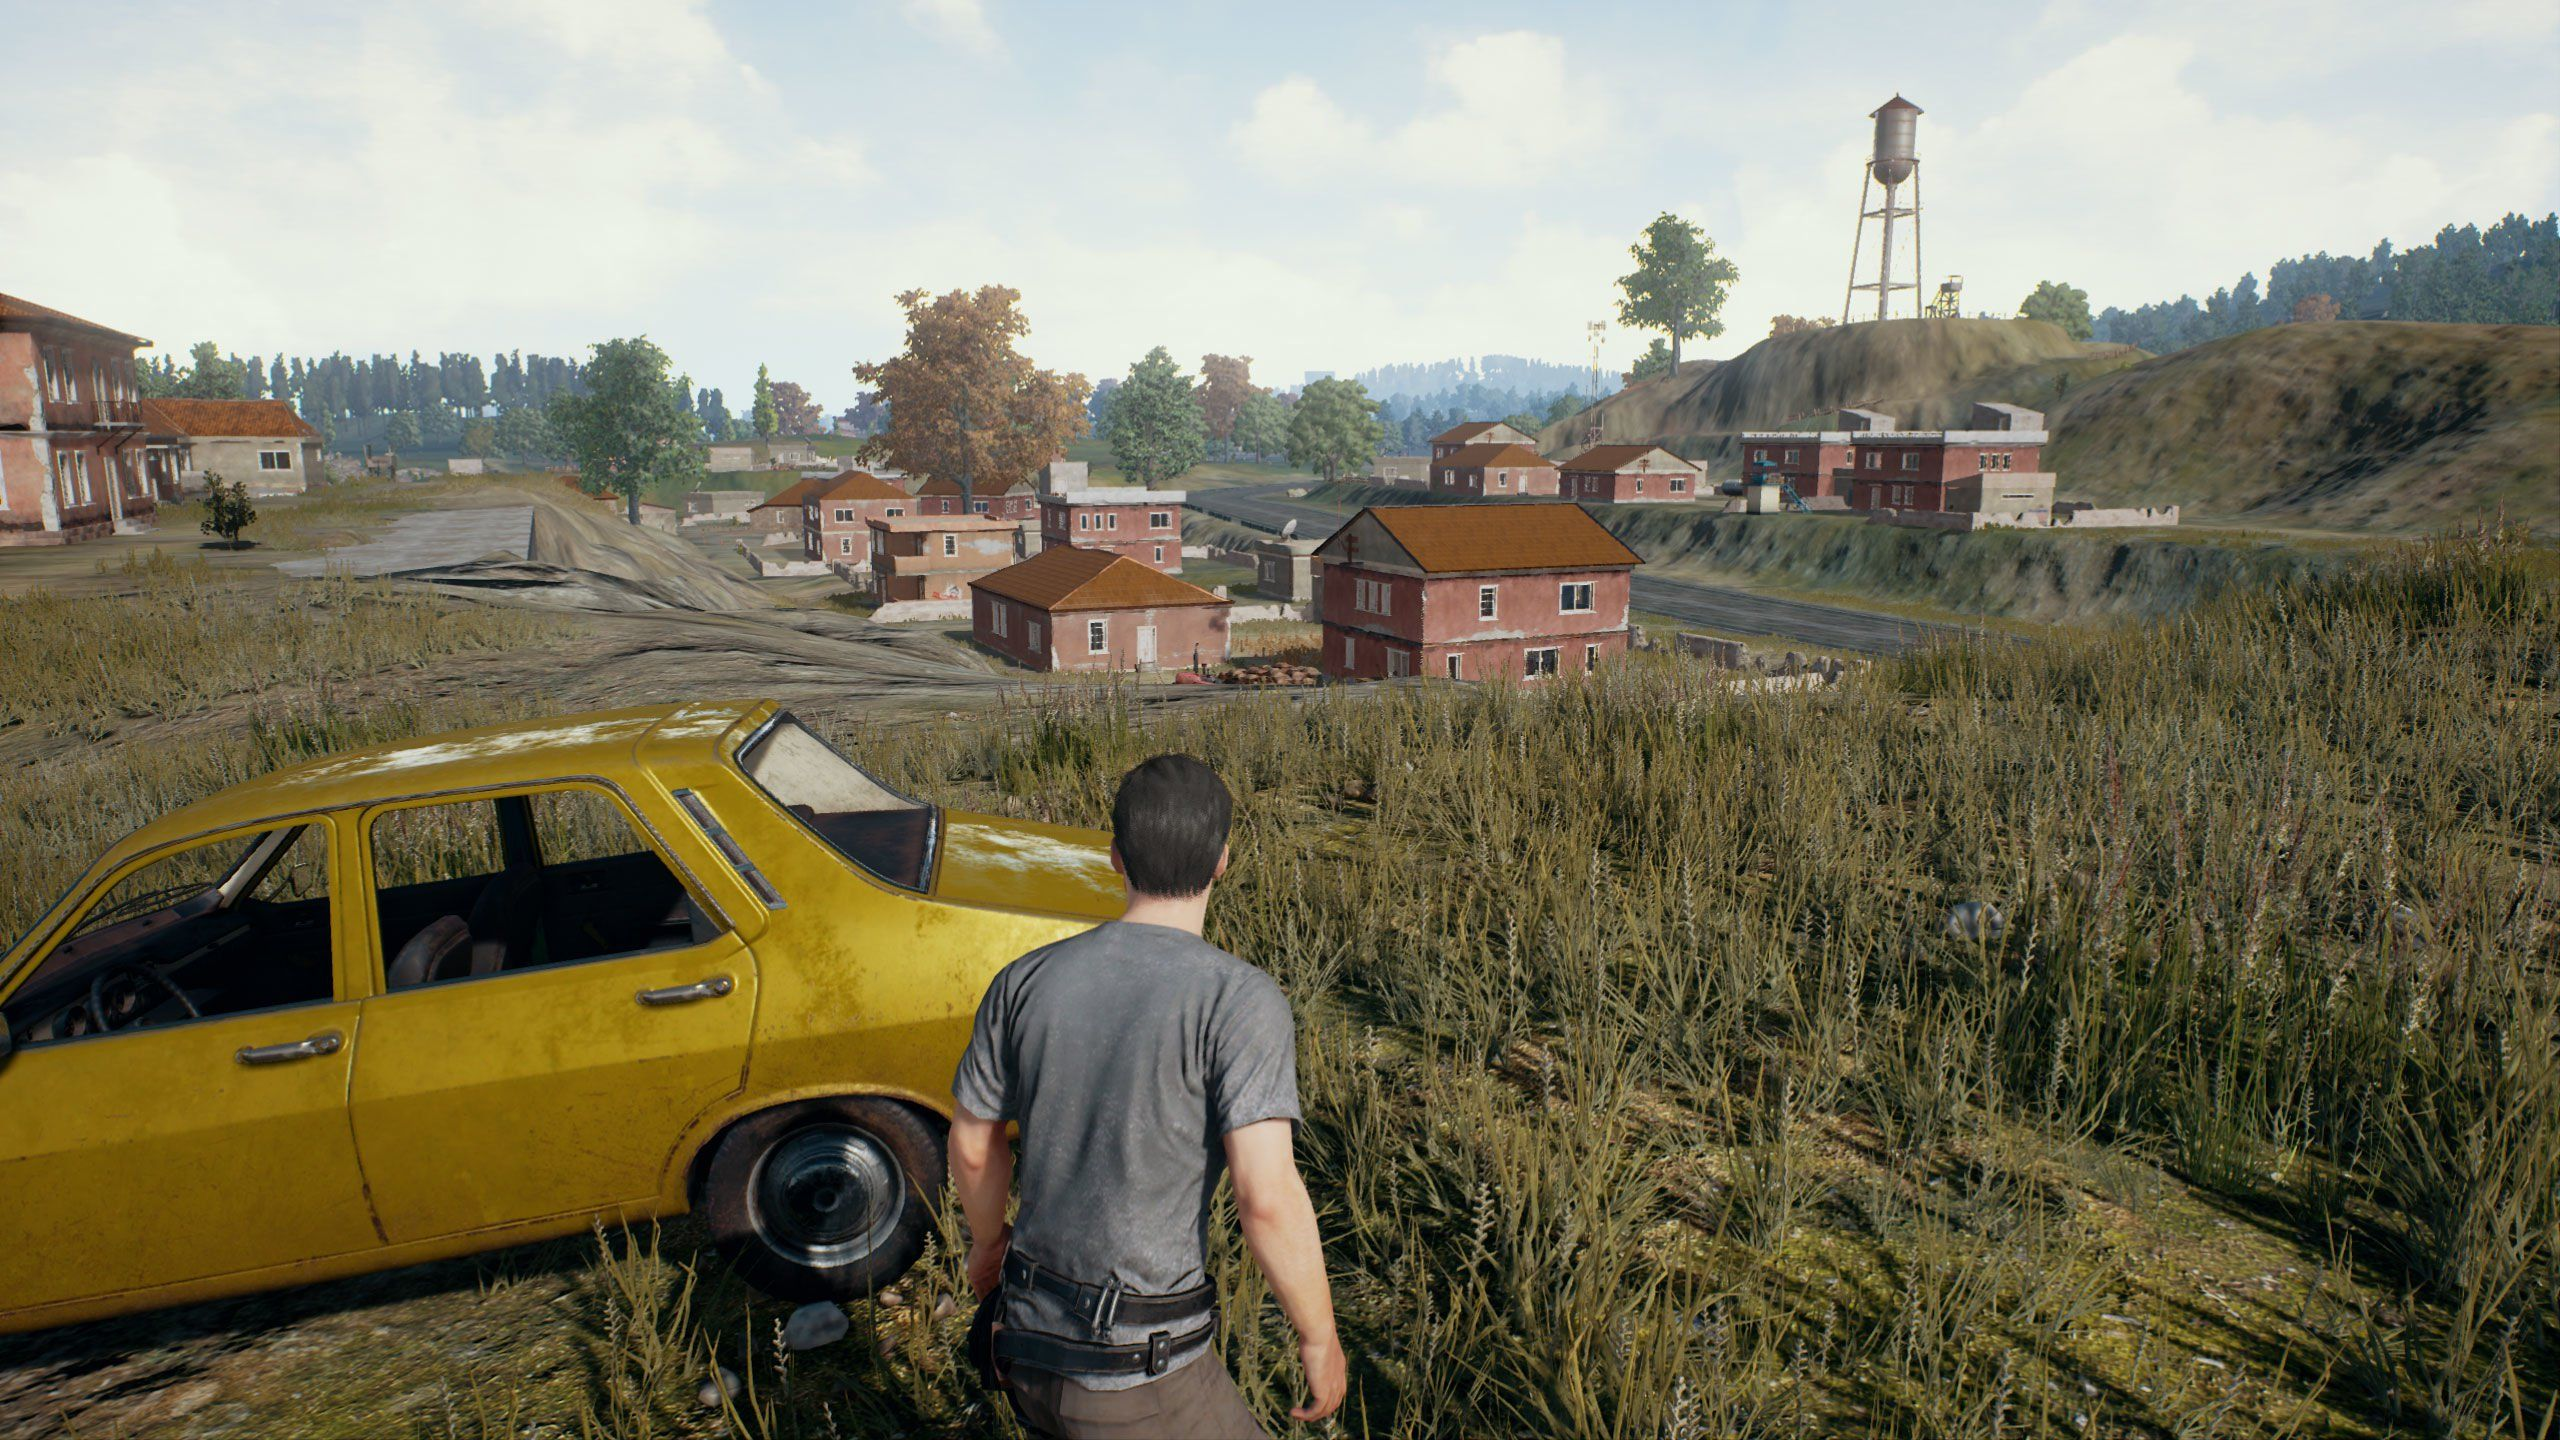 PUBG vs Fortnite Battle Royale: Which should you play? - Tech Advisor